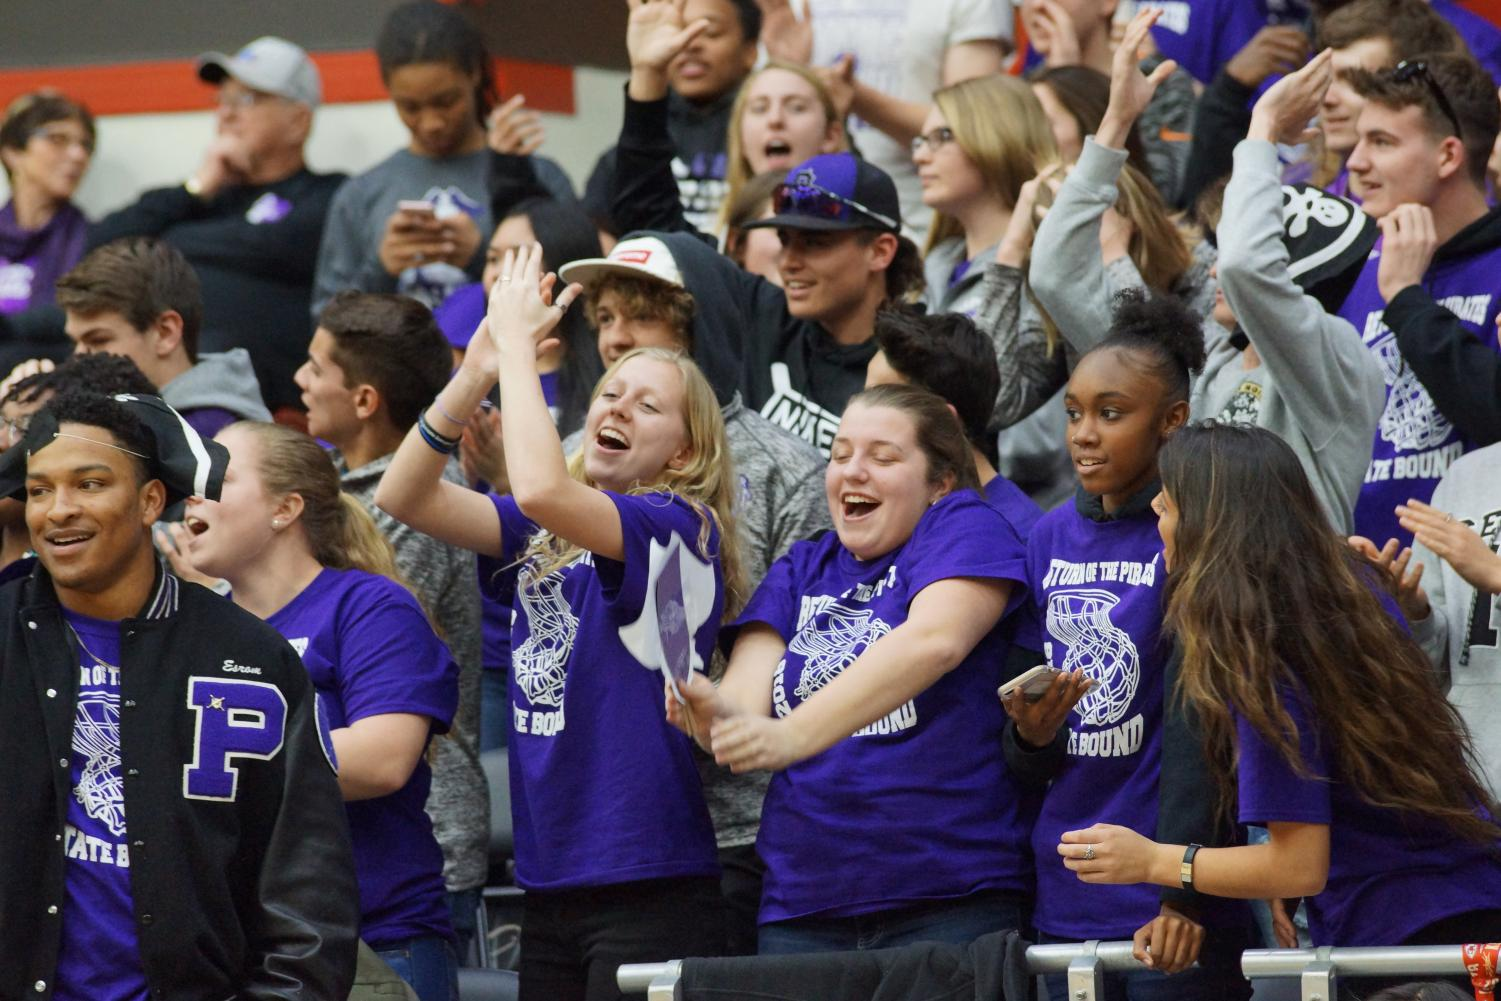 The crowd cheers and celebrates the Pirates 57-42 win against the Paola Panthers at game  one of the state tournament.